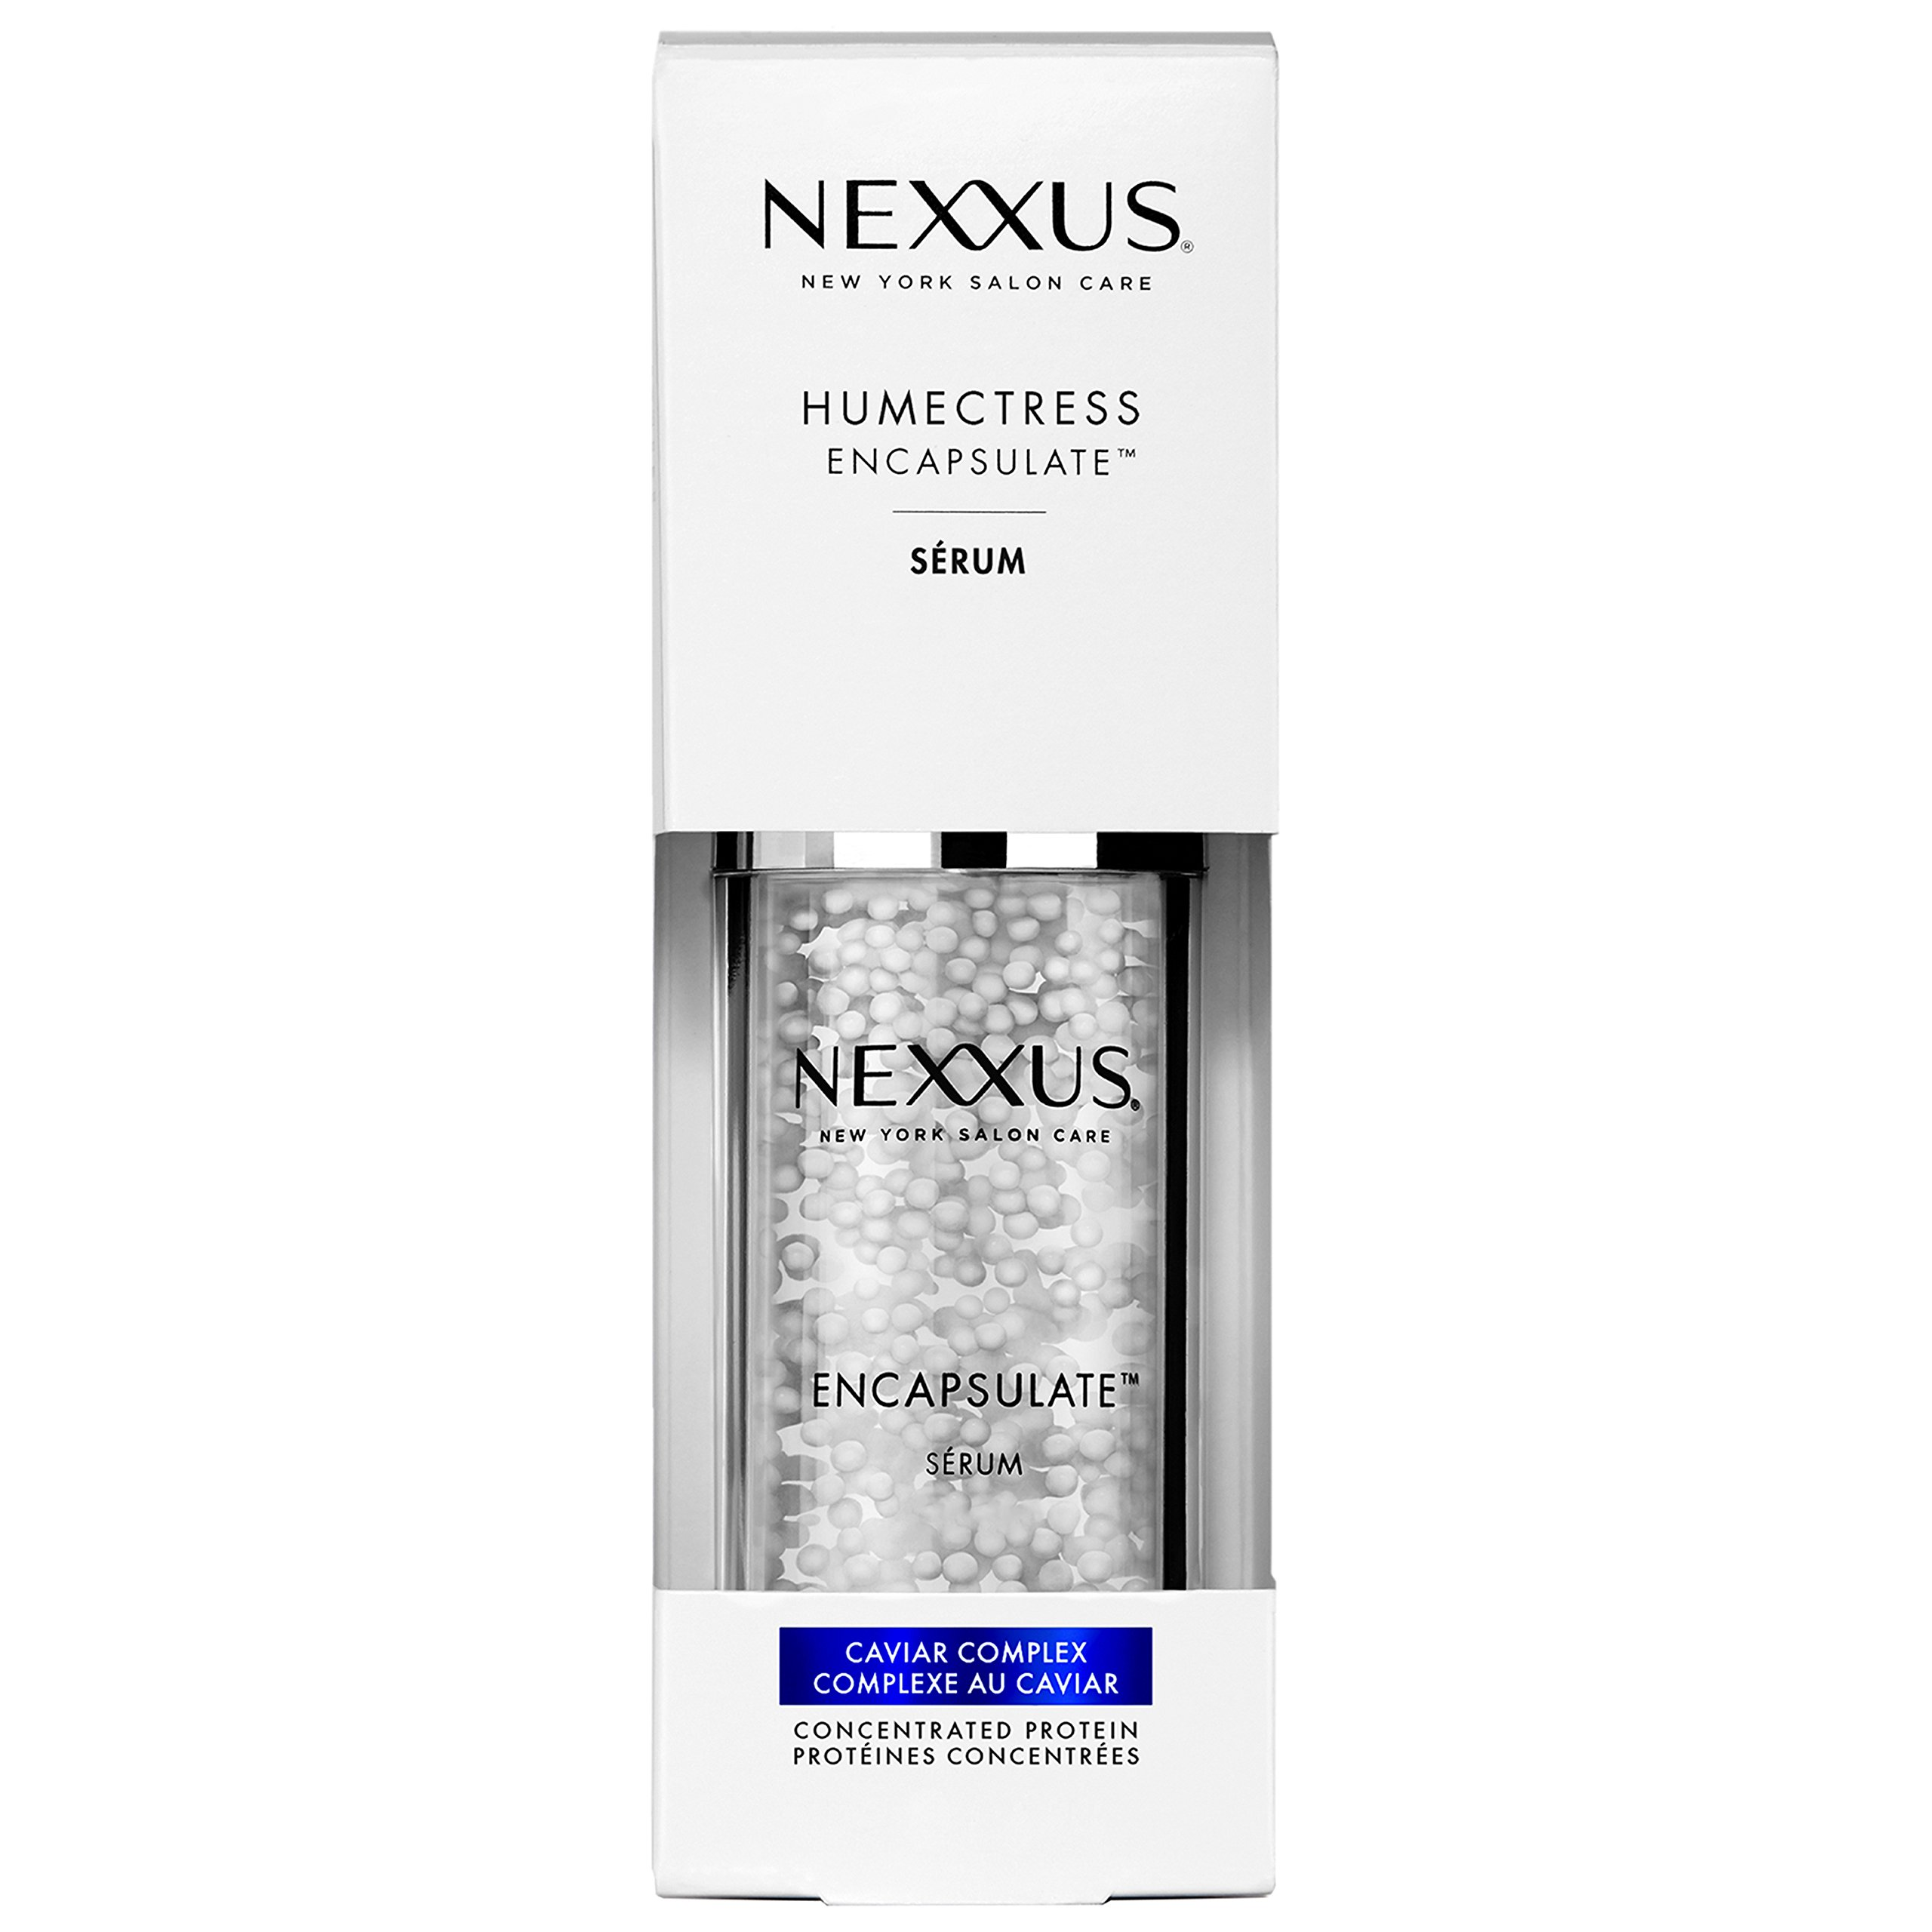 Nexxus Humectress Encapsulate Serum, for Normal to Dry Hair 2.03 oz